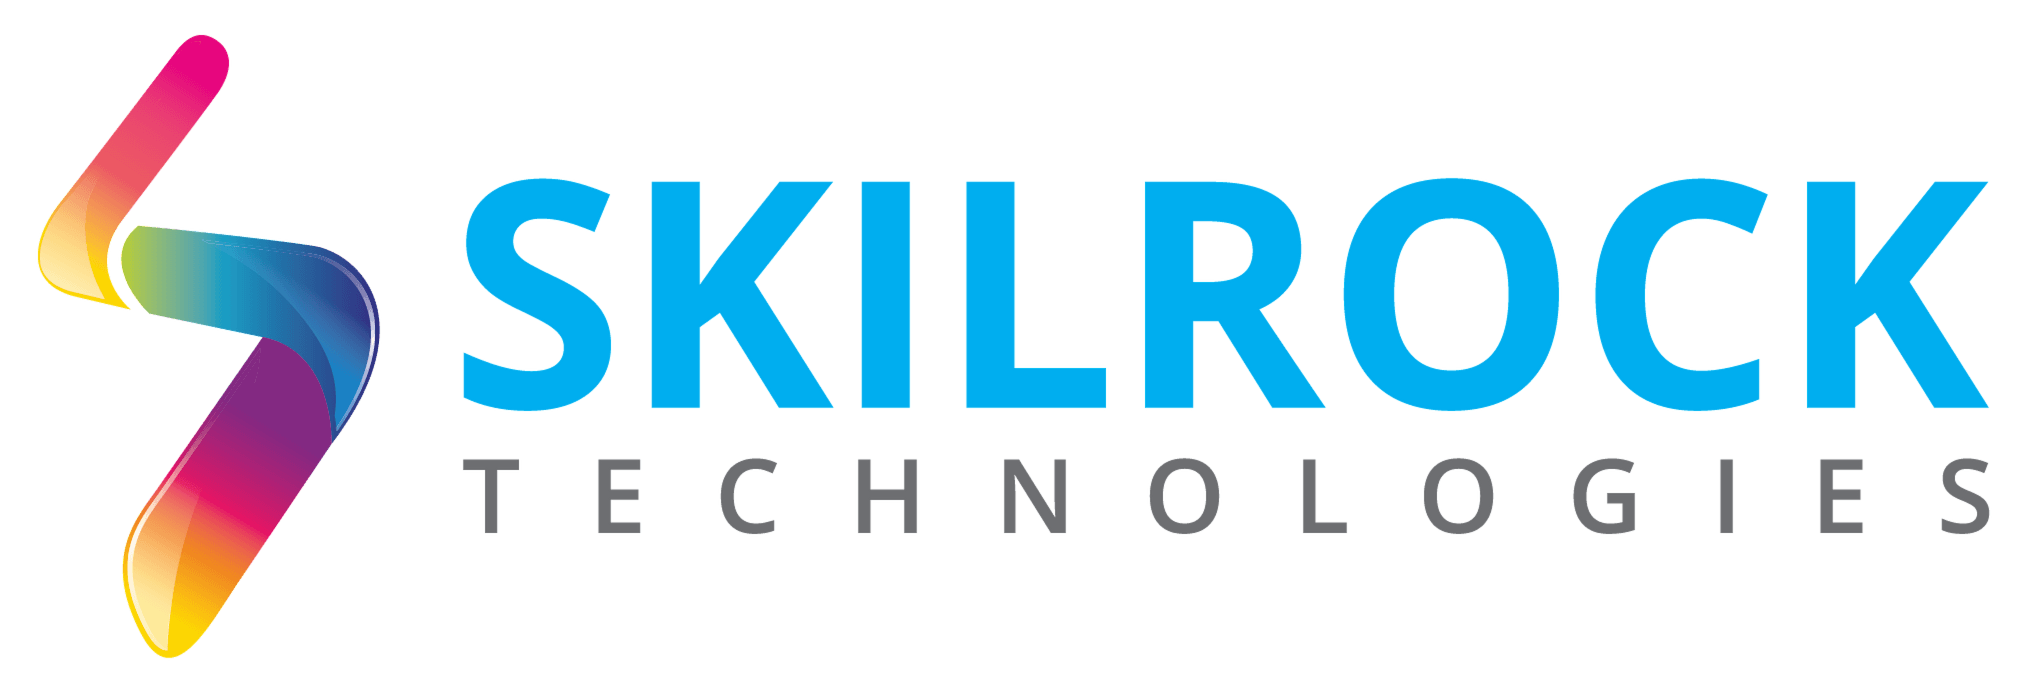 Skilrock Technologies Pvt. Ltd..